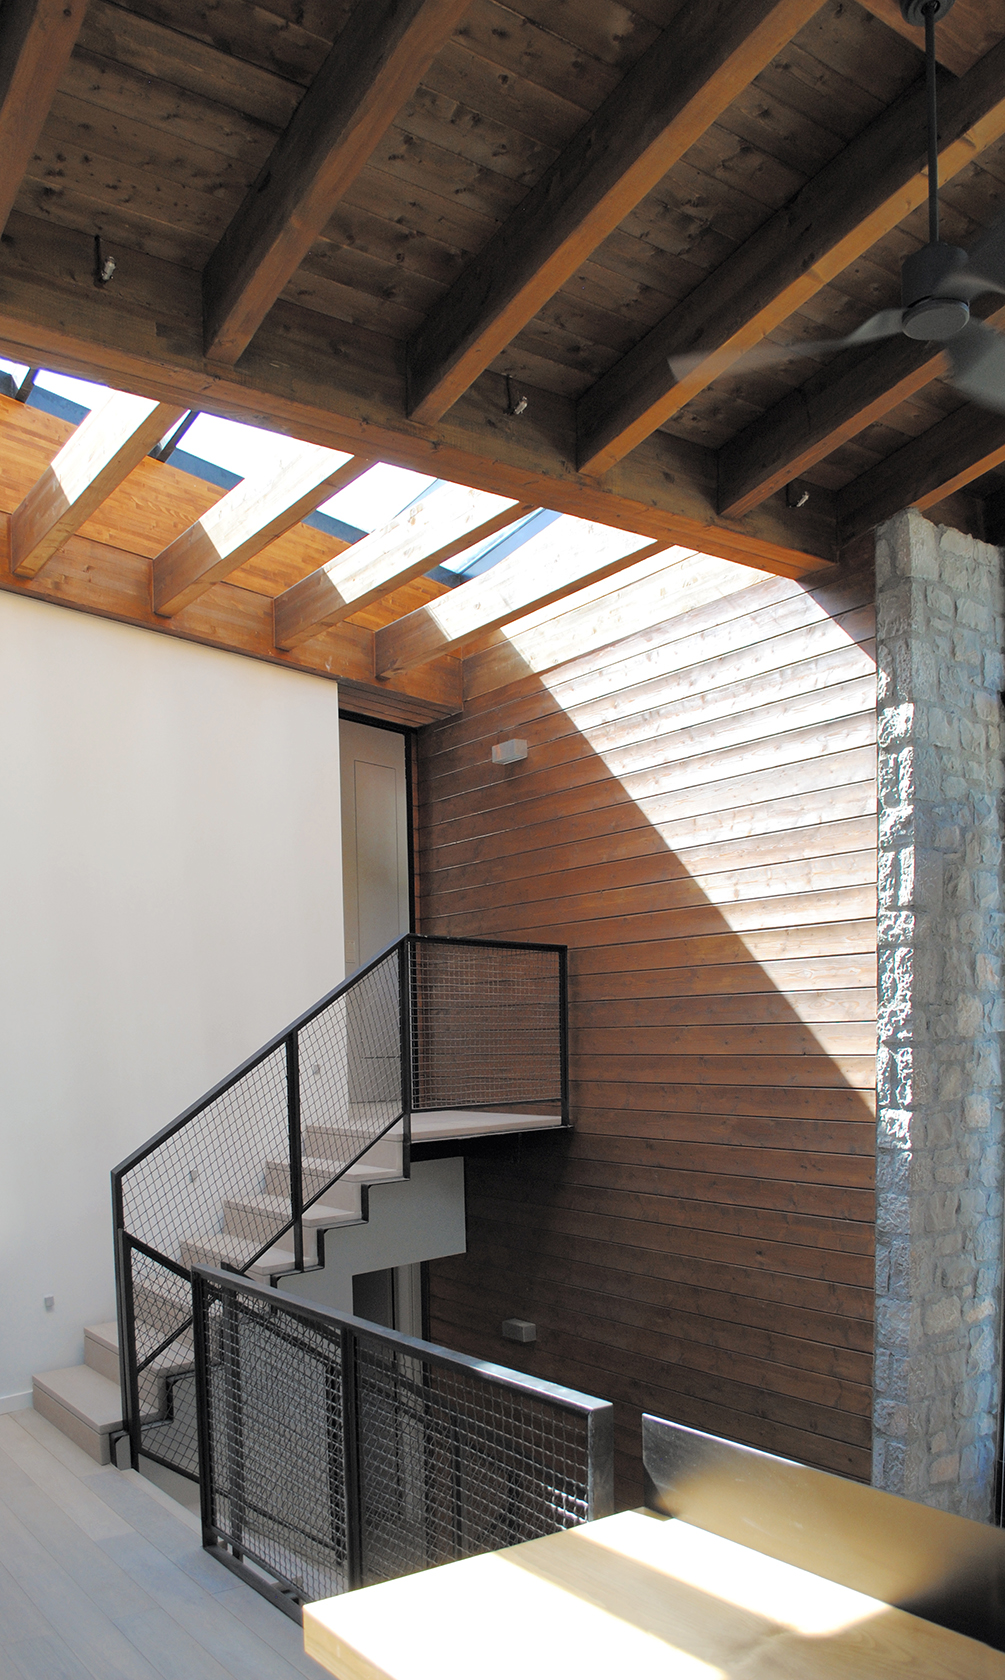 Wedge stairway with natural light